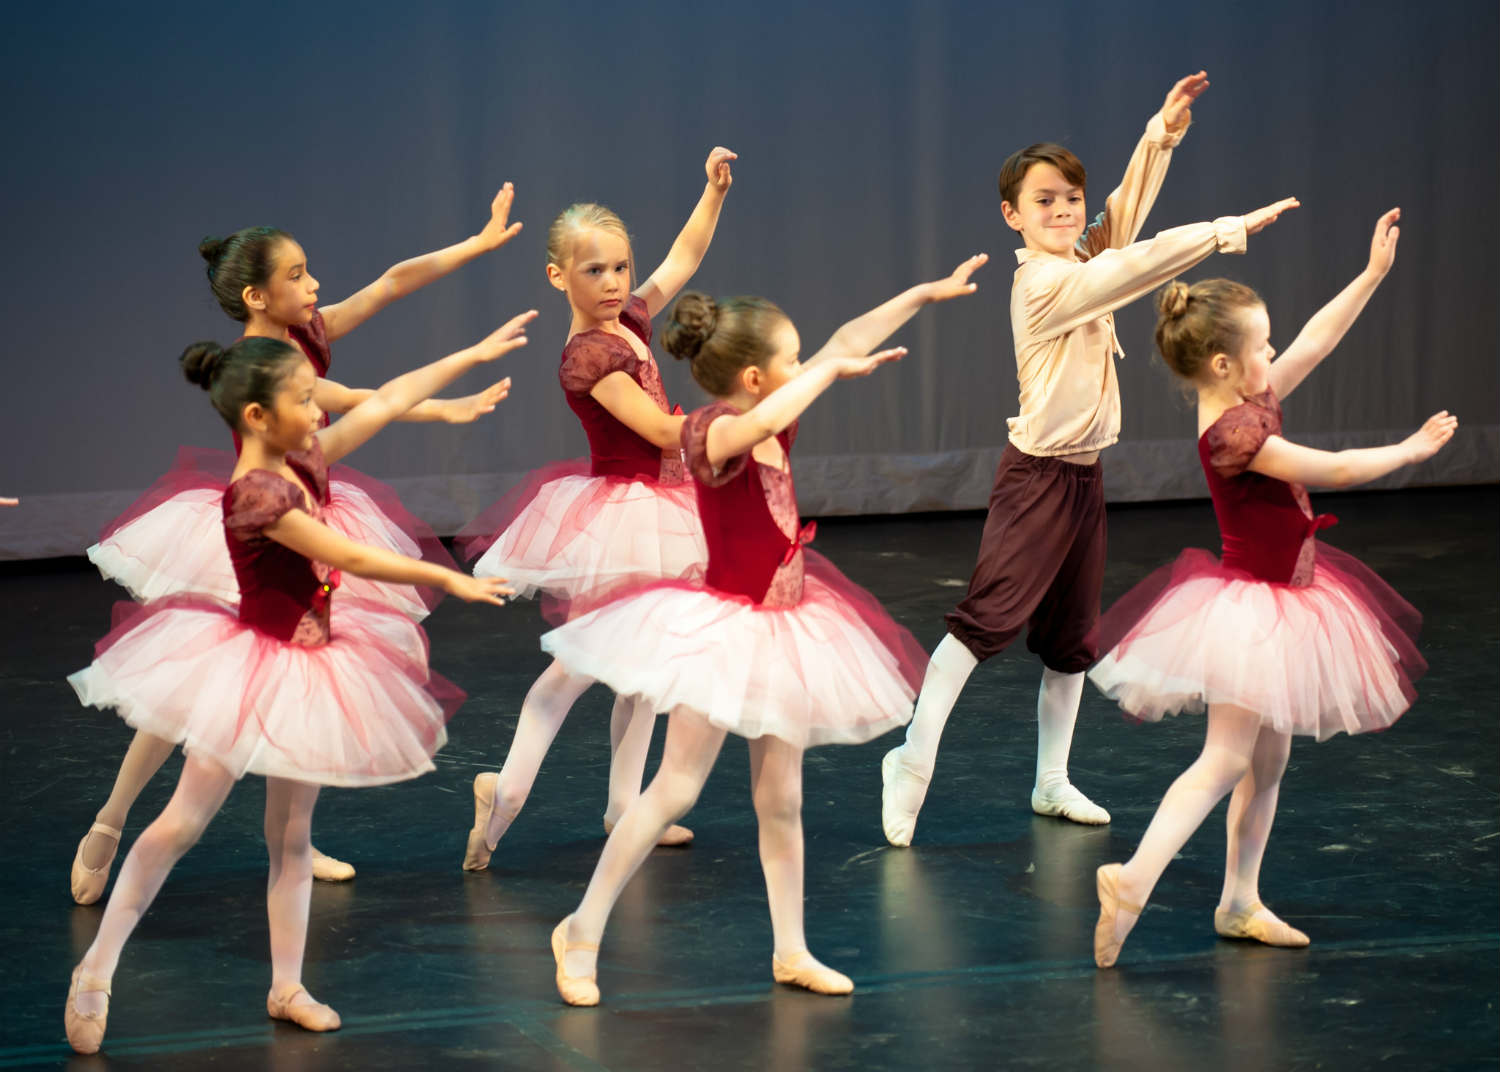 kids ballet performace on stage